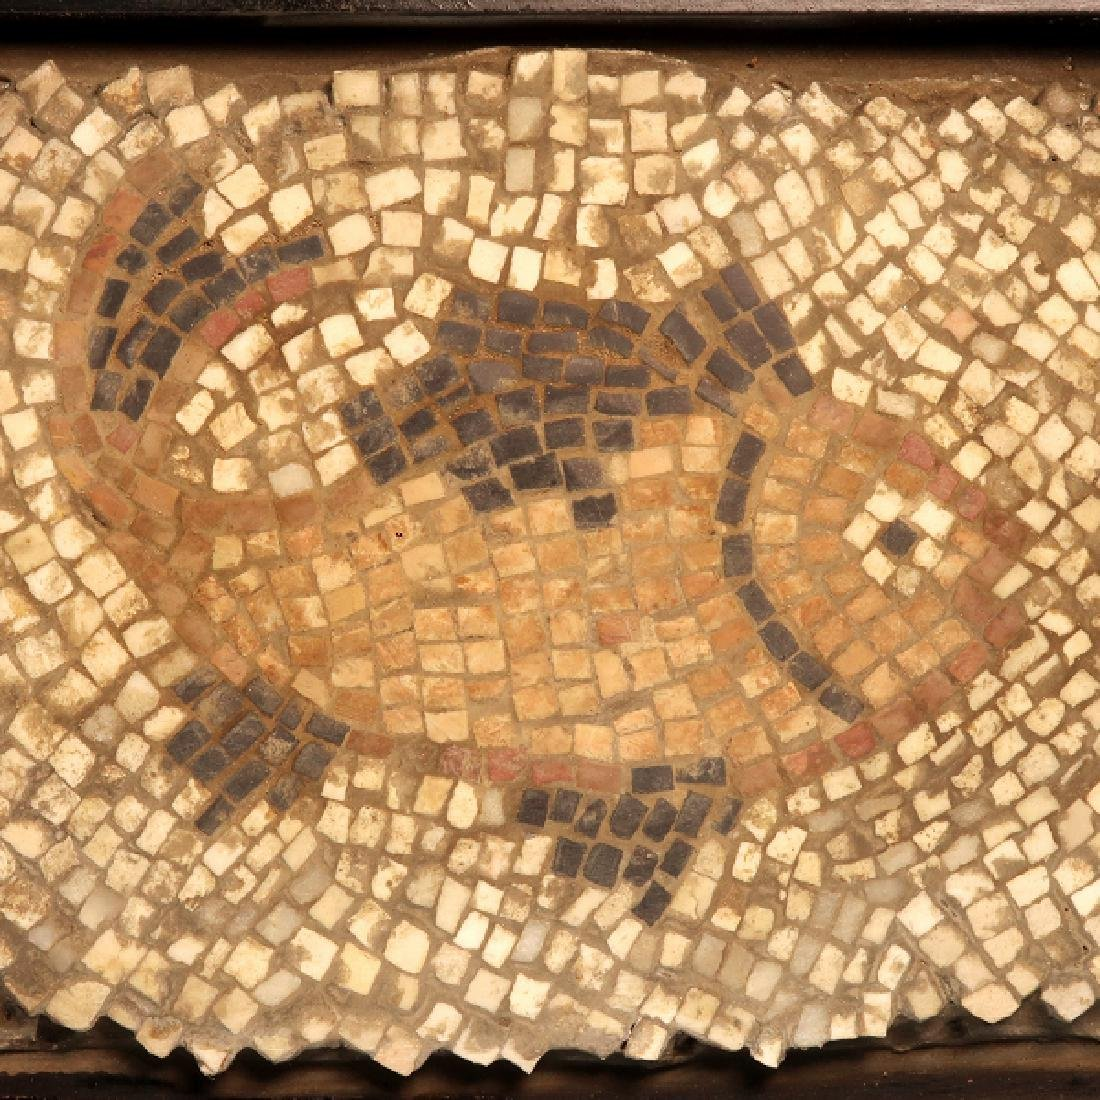 Roman Mosaic Panel with Fish, c. 4th-6th Century A.D.